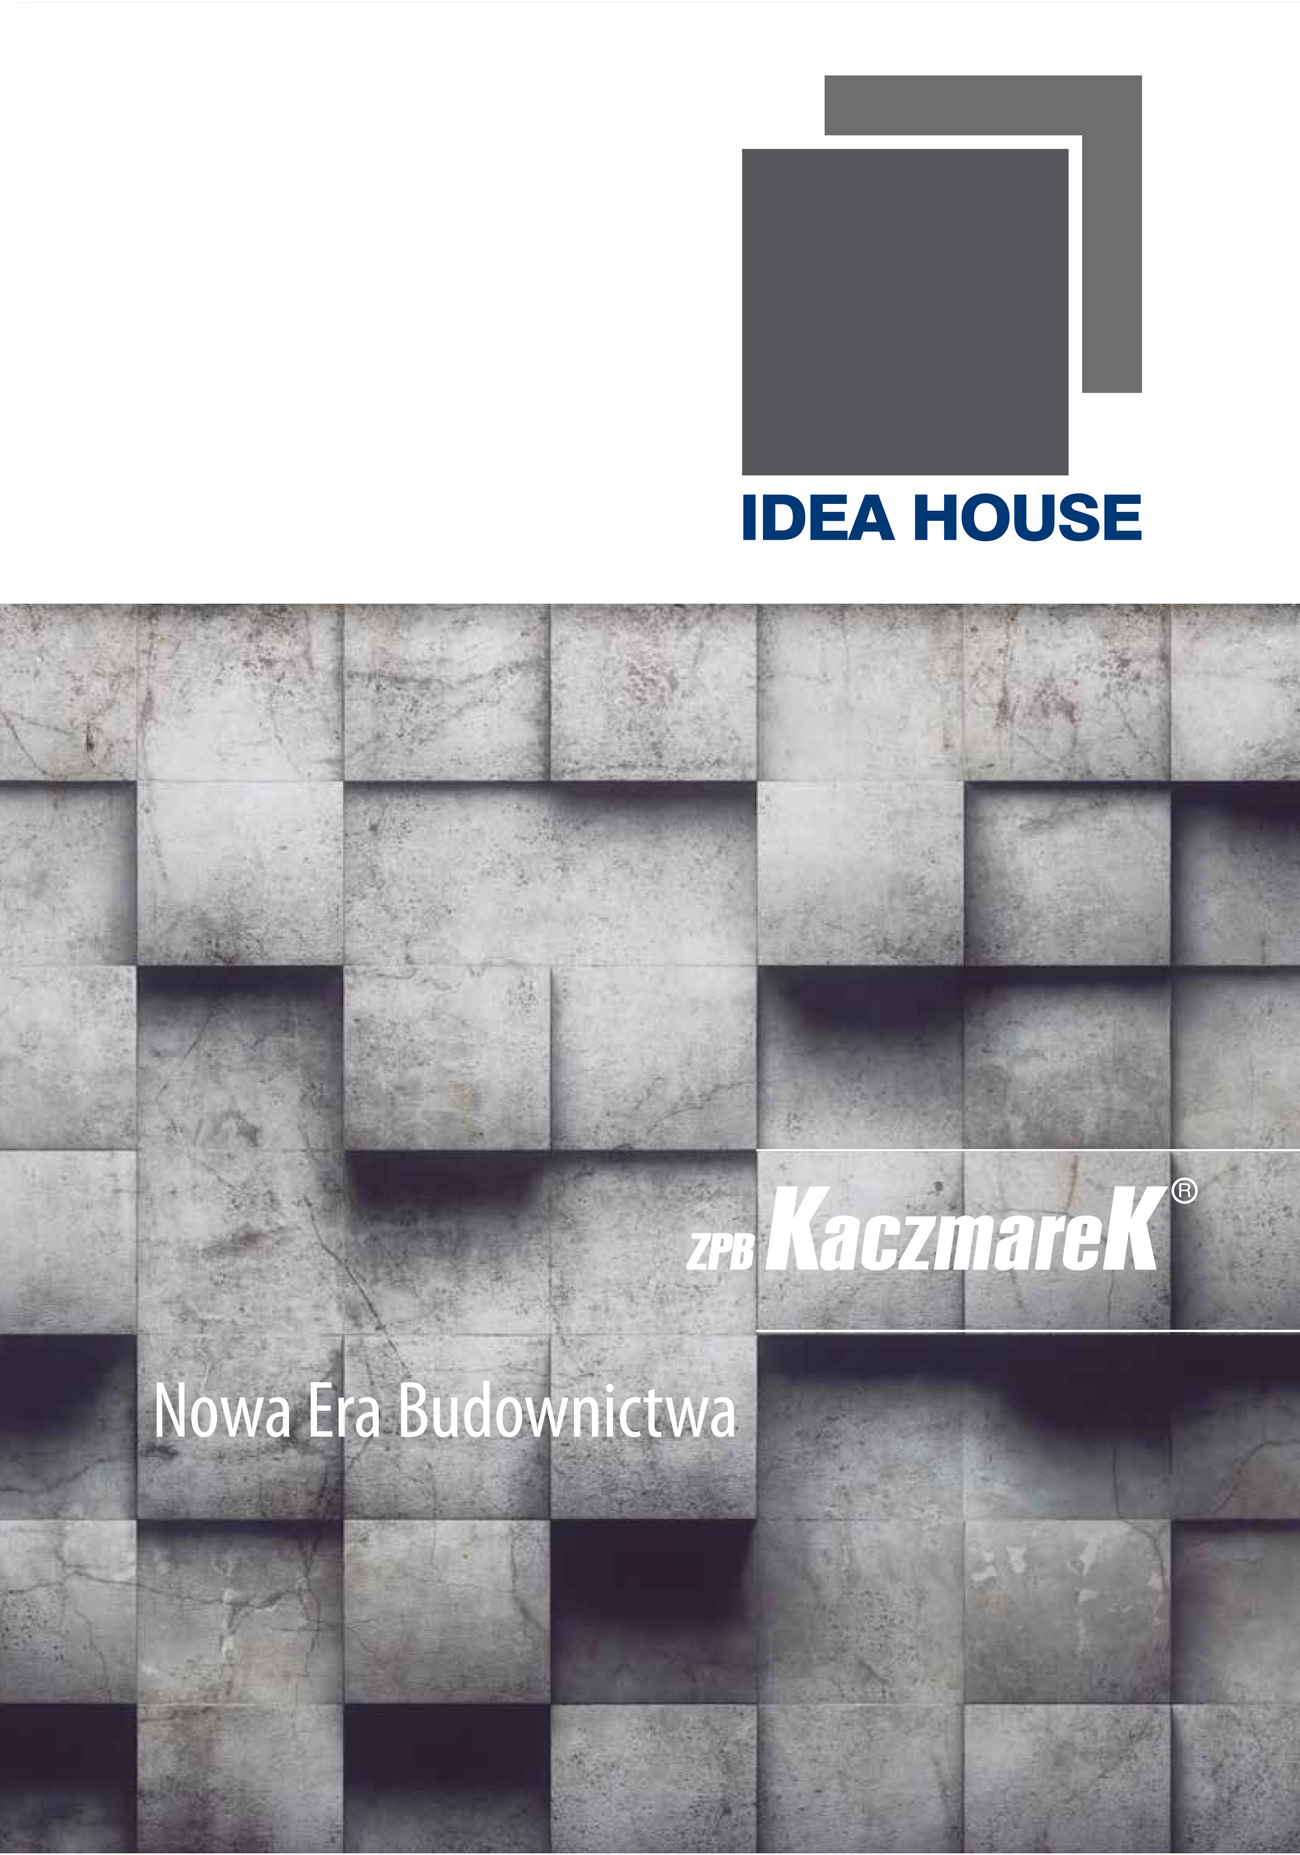 Idea_House_katalog_okladka.jpg